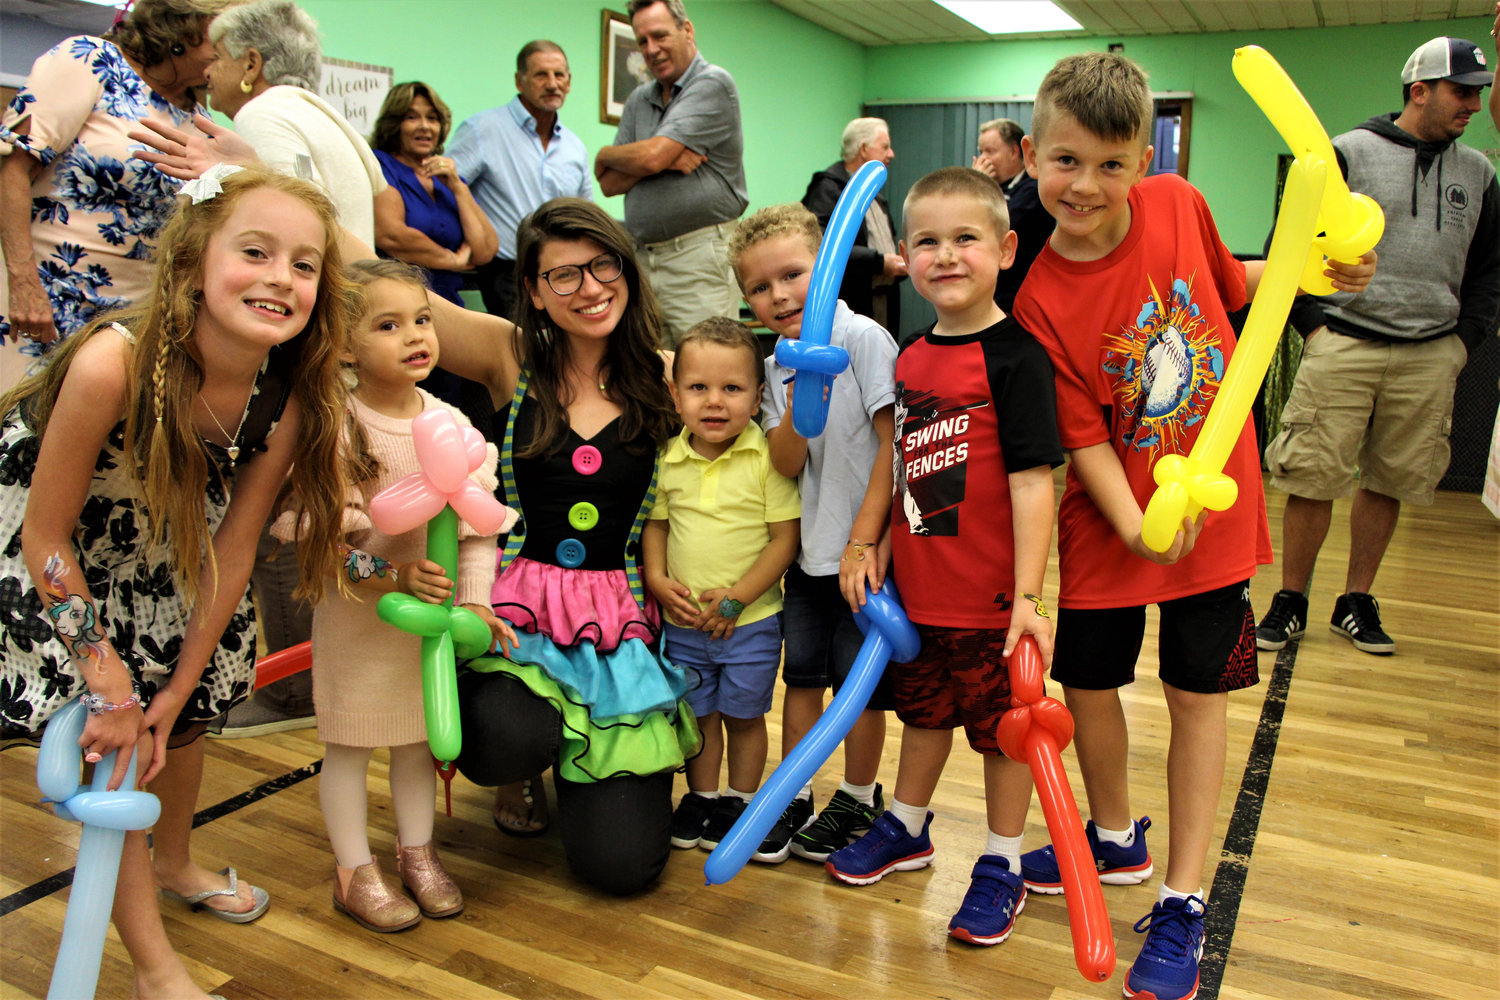 Daniela Ranfone, far left, Gabriella Randazzo, Heather Rose, Justin and John Vaughan, and Sean and Ryan Horbach played with balloons at Pat's Dance Studio's 40th anniversary celebration on Sept. 6.